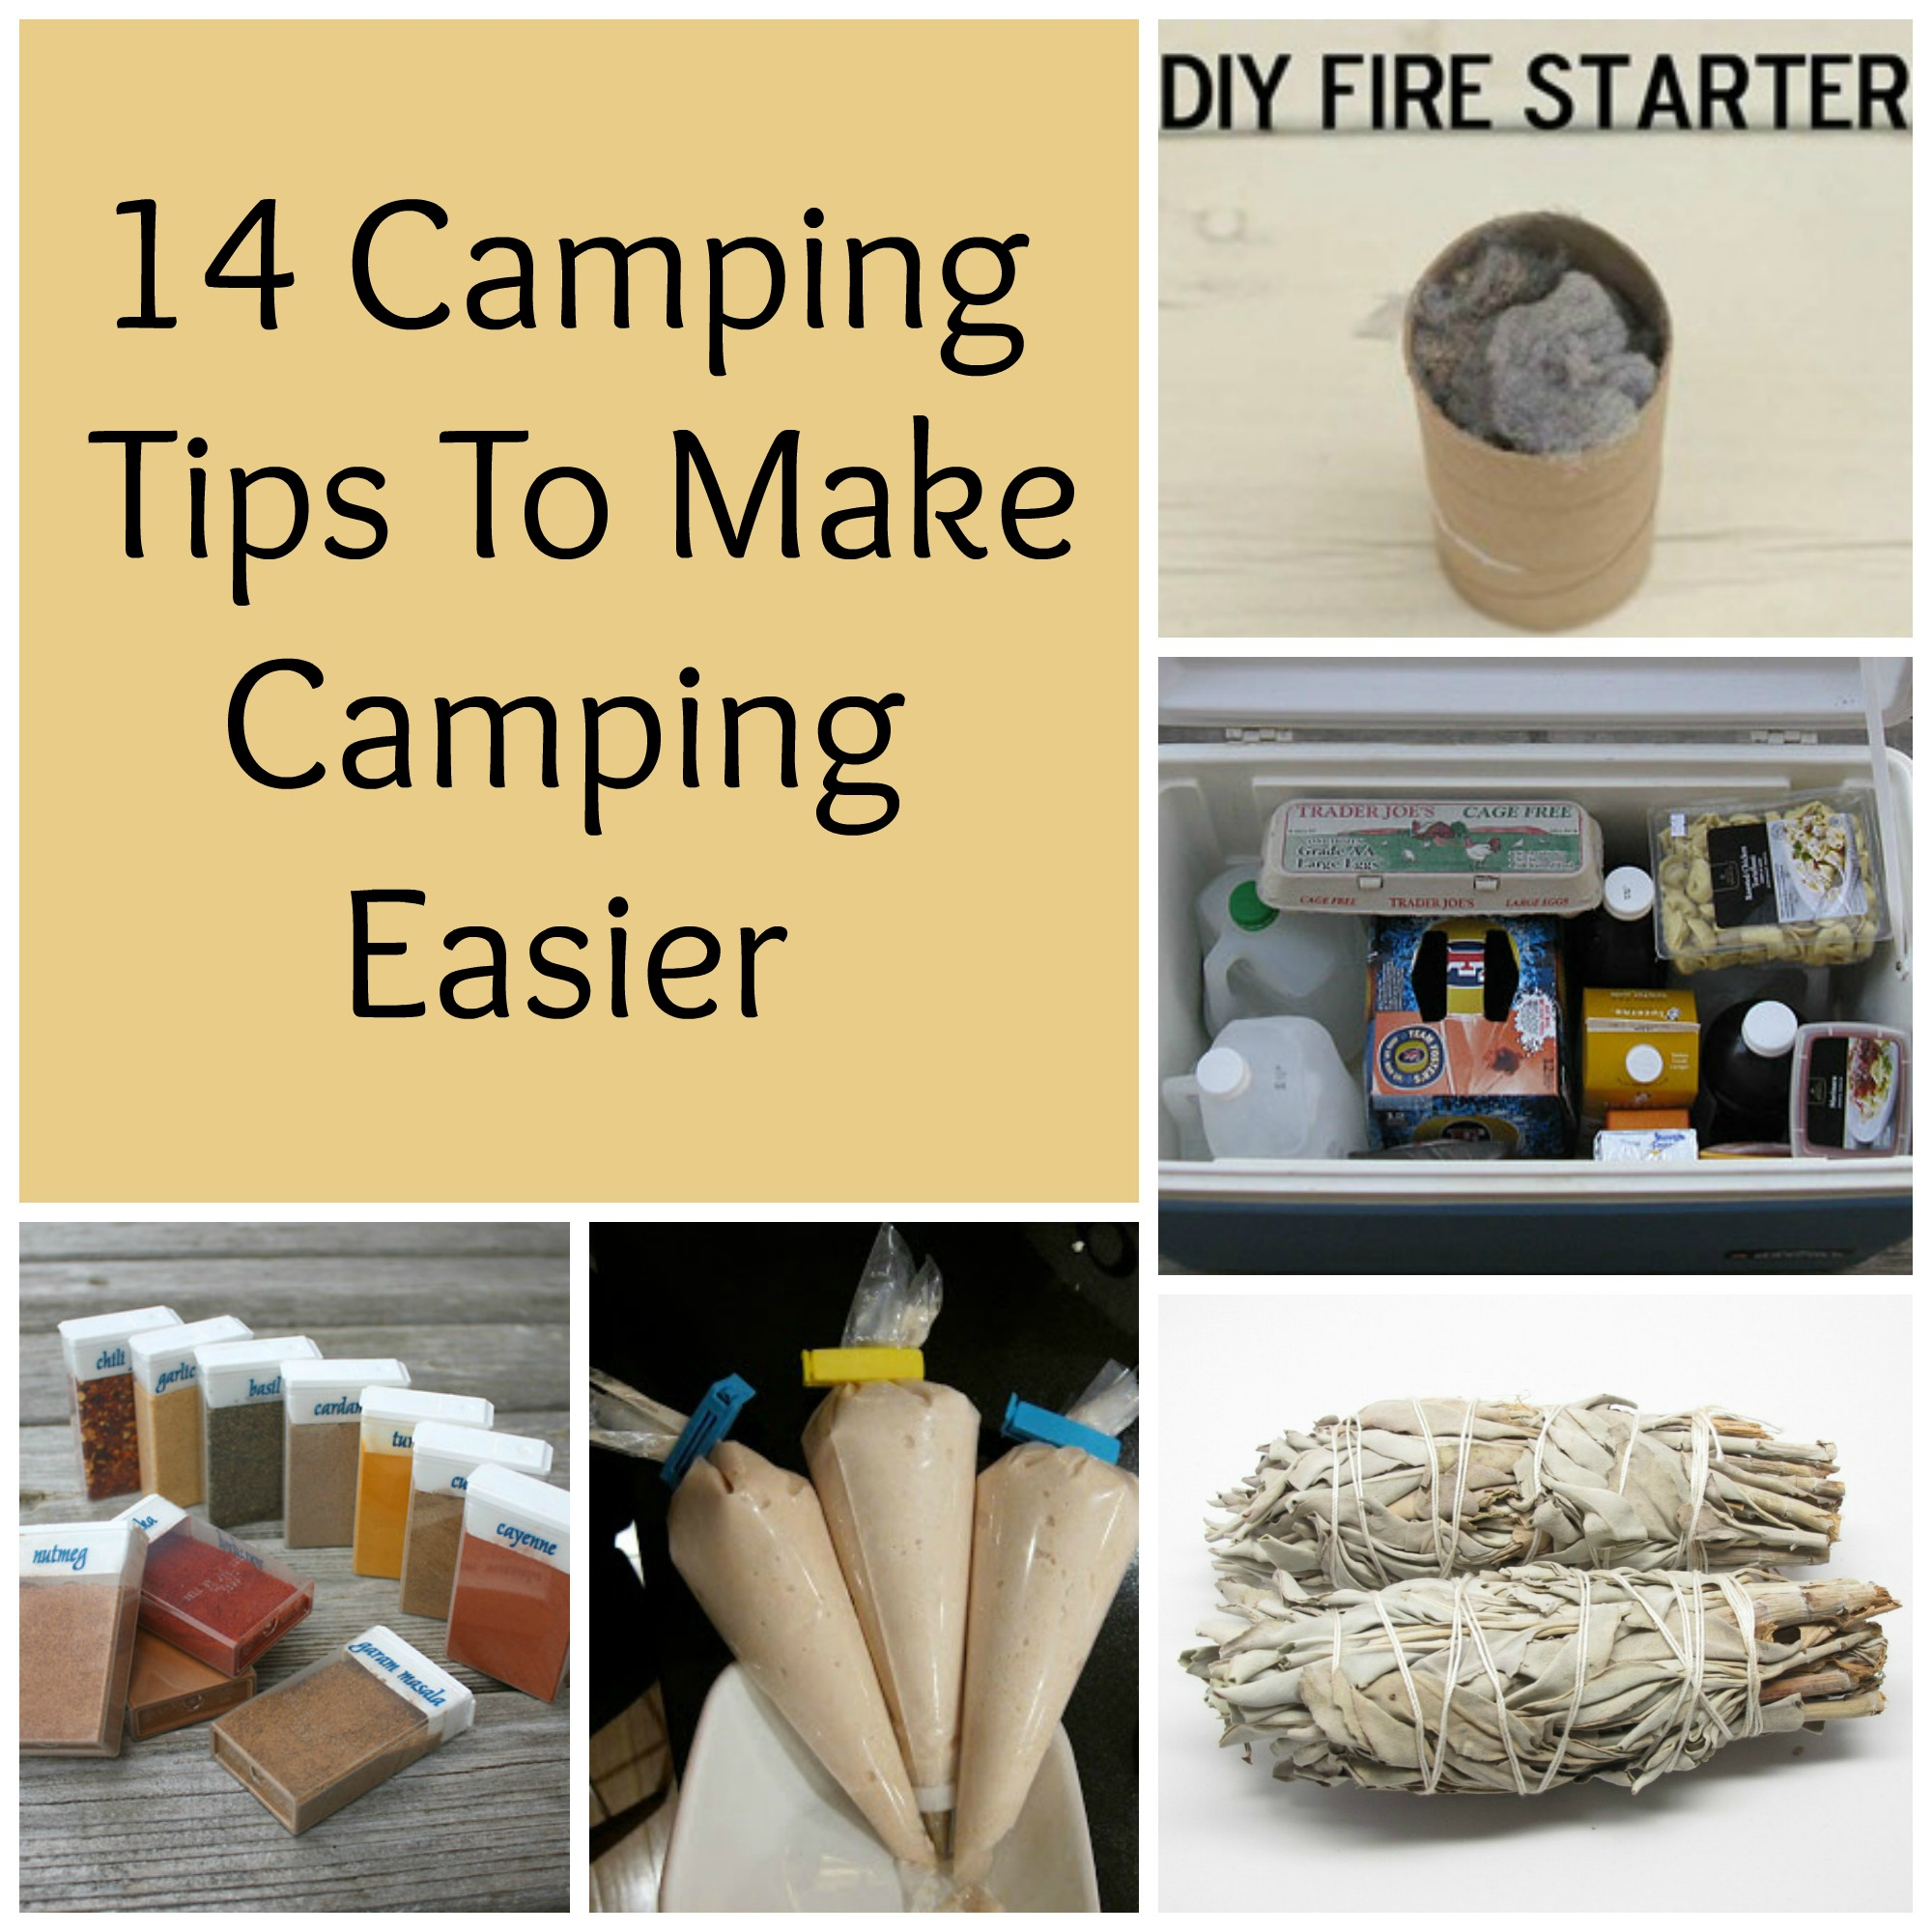 Camp Cooking Tips And Tricks: 14 Camping Tips To Make Camping Easier